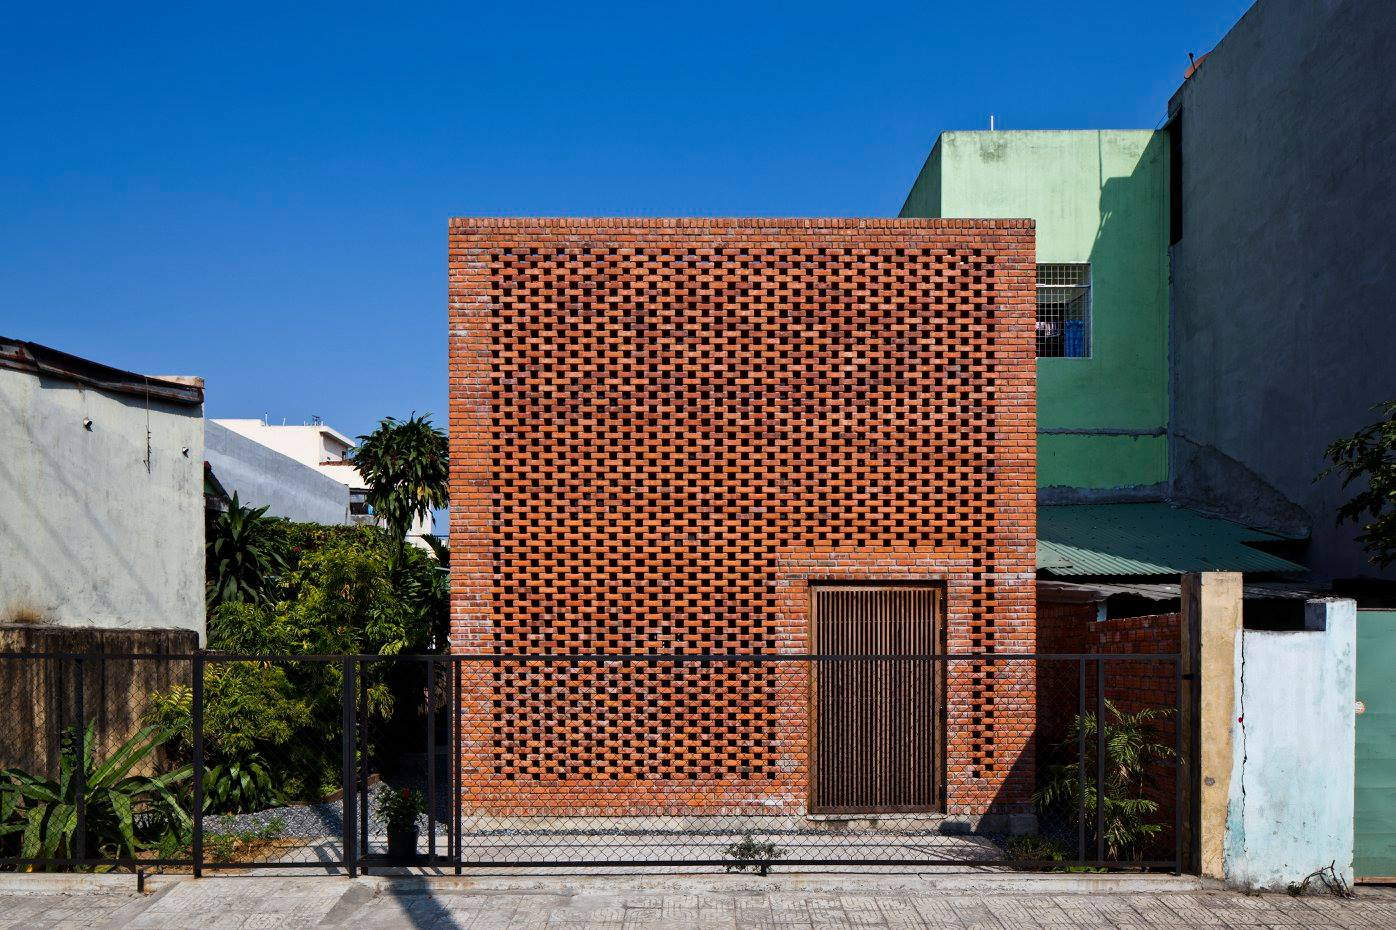 Brick Exterior: A Creative Brick House Controls The Interior Climate And